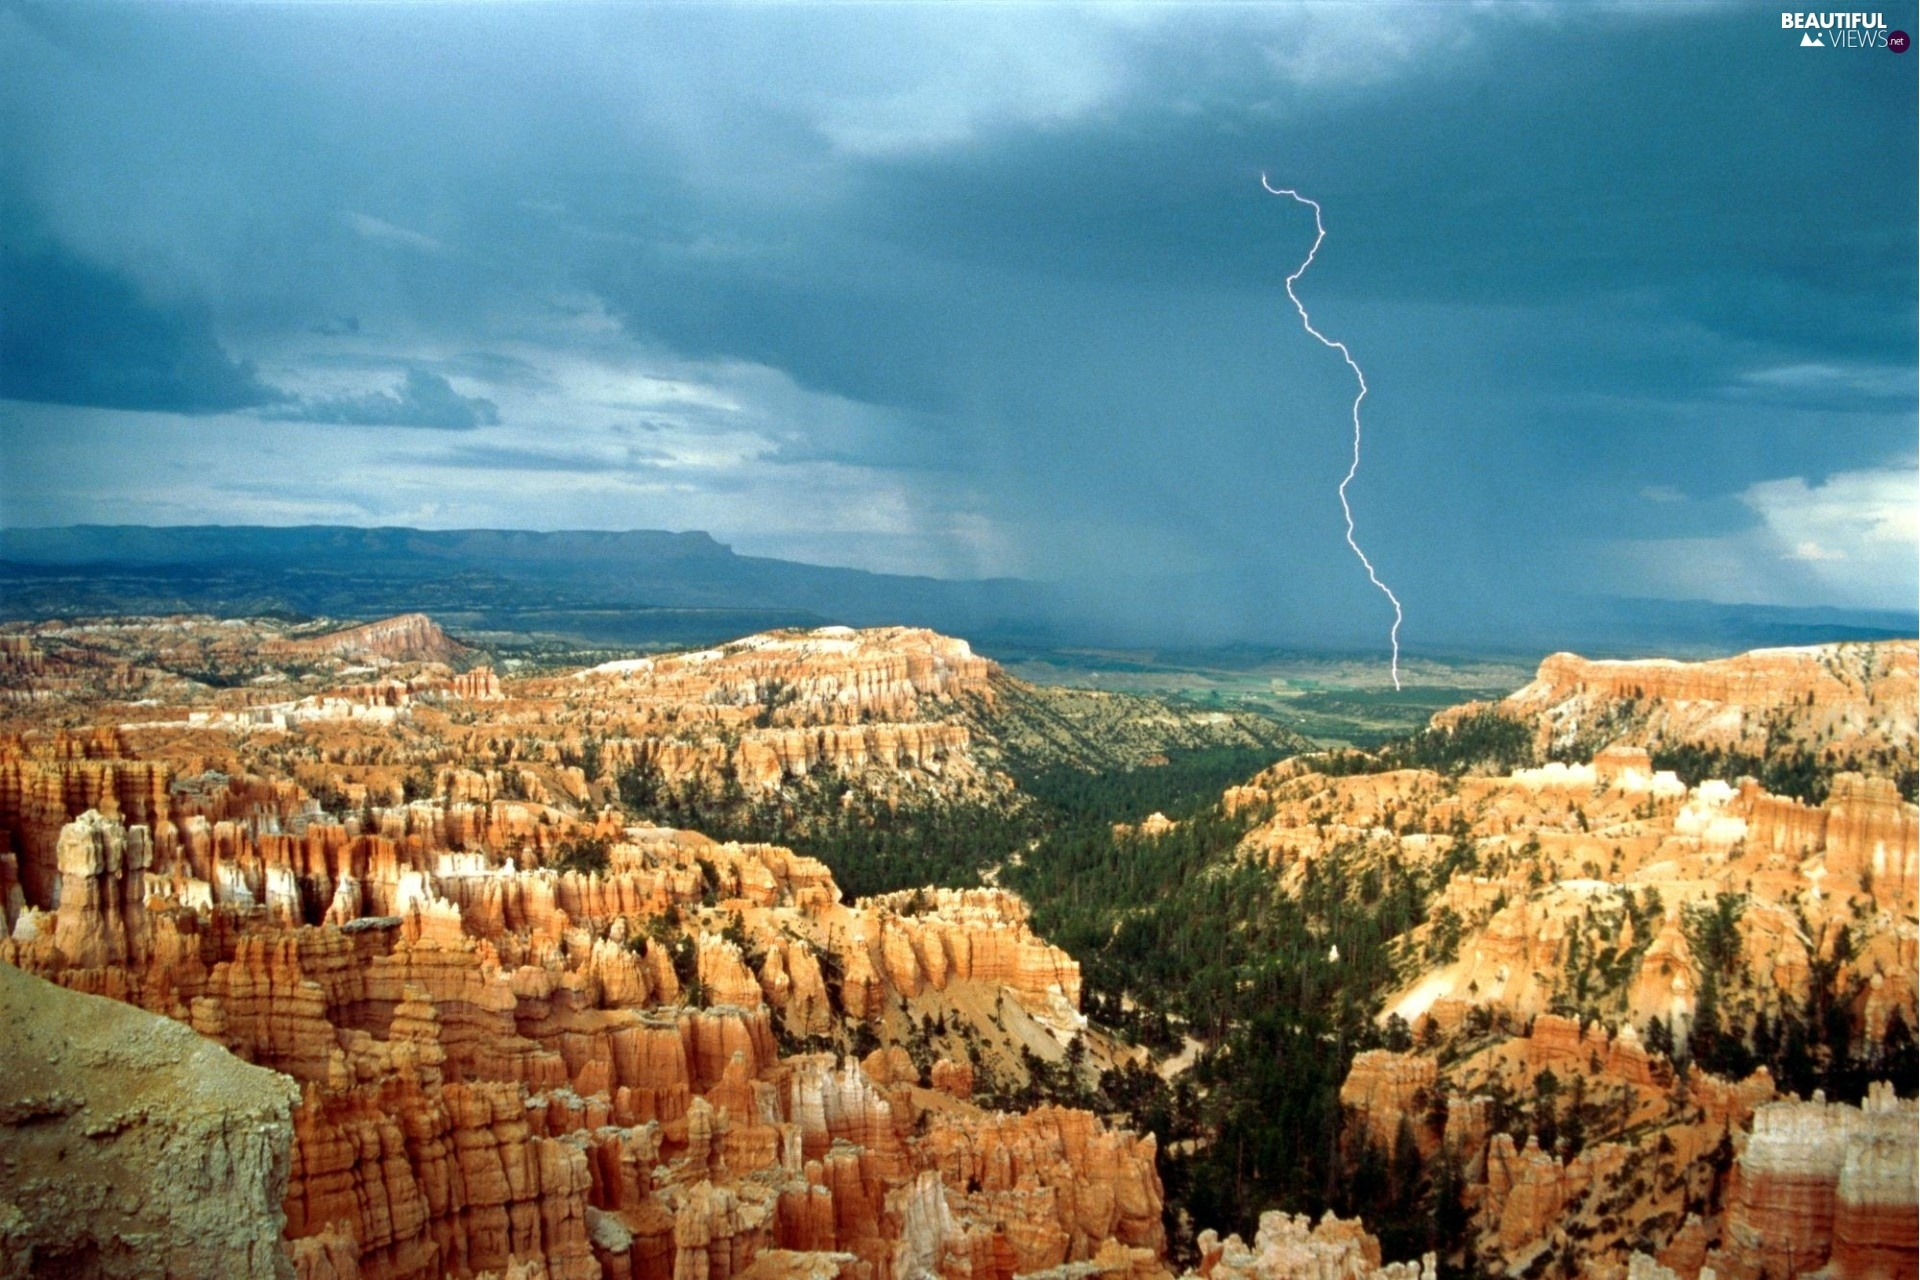 Landscapes, Mountains, canyons, Storms